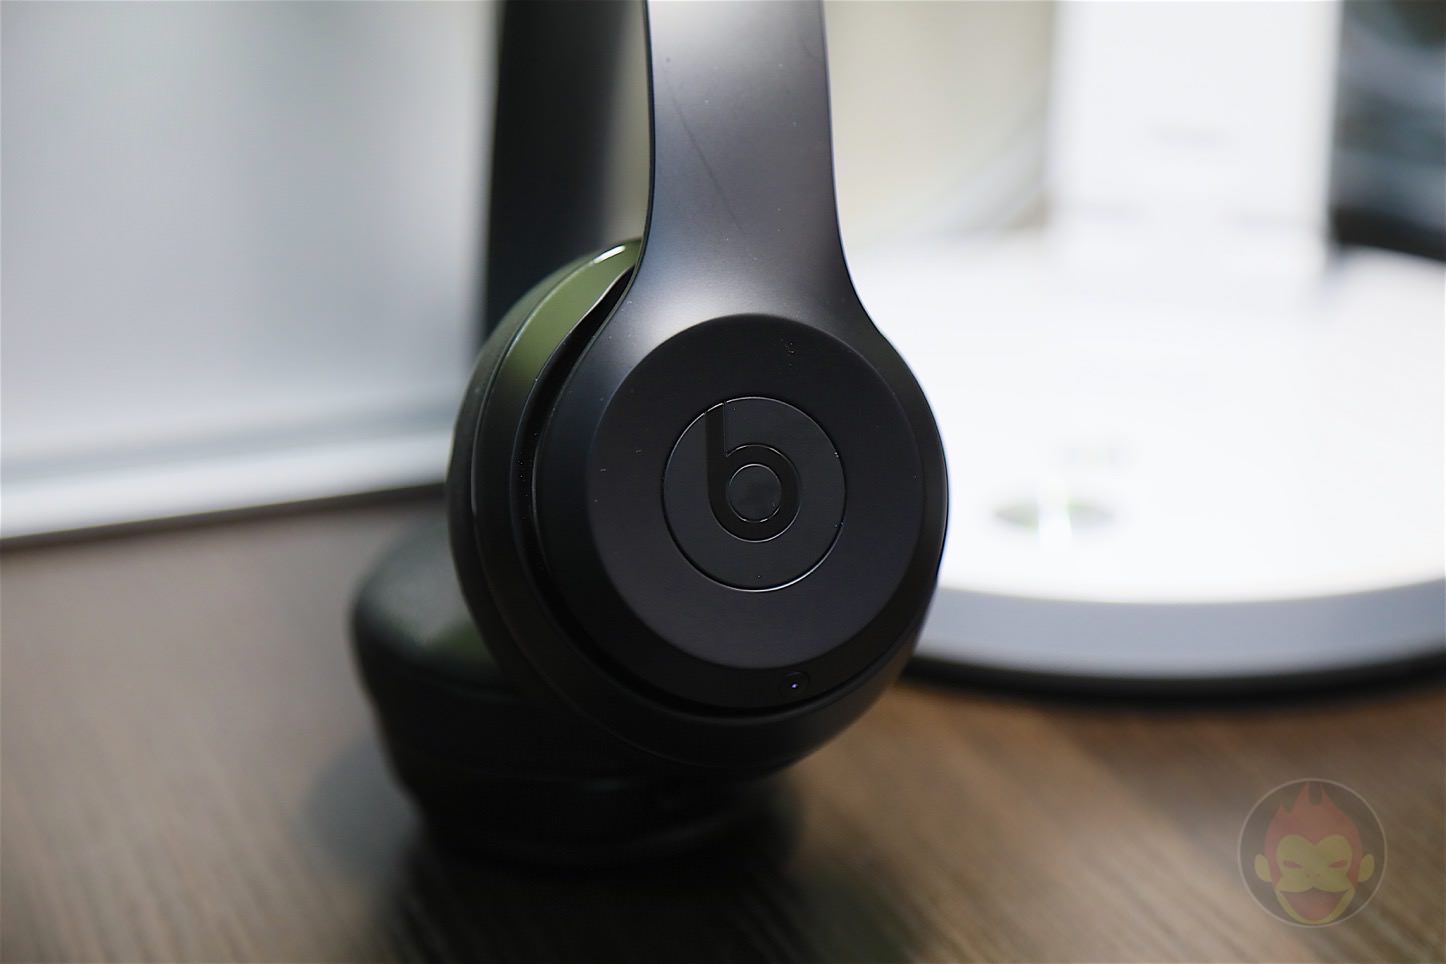 Beats-Solo3-Wireless-Headphones-11.jpg